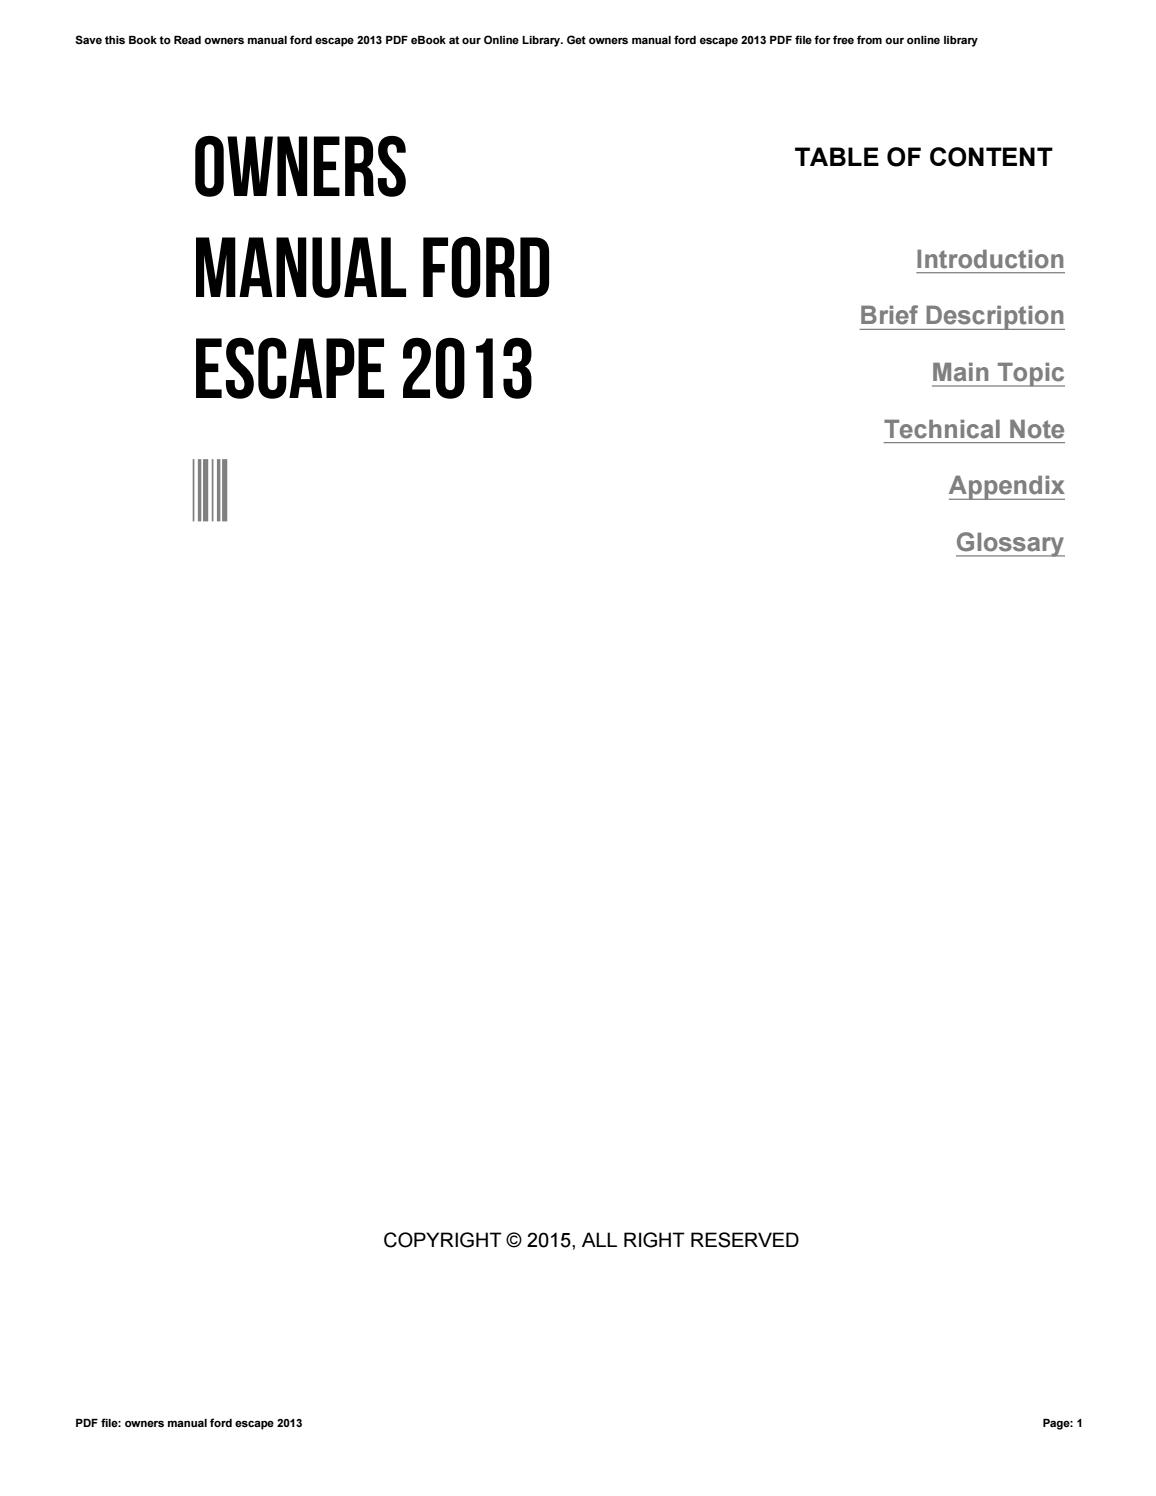 Owners Manual Ford Escape 2013 By Dwse54 Issuu